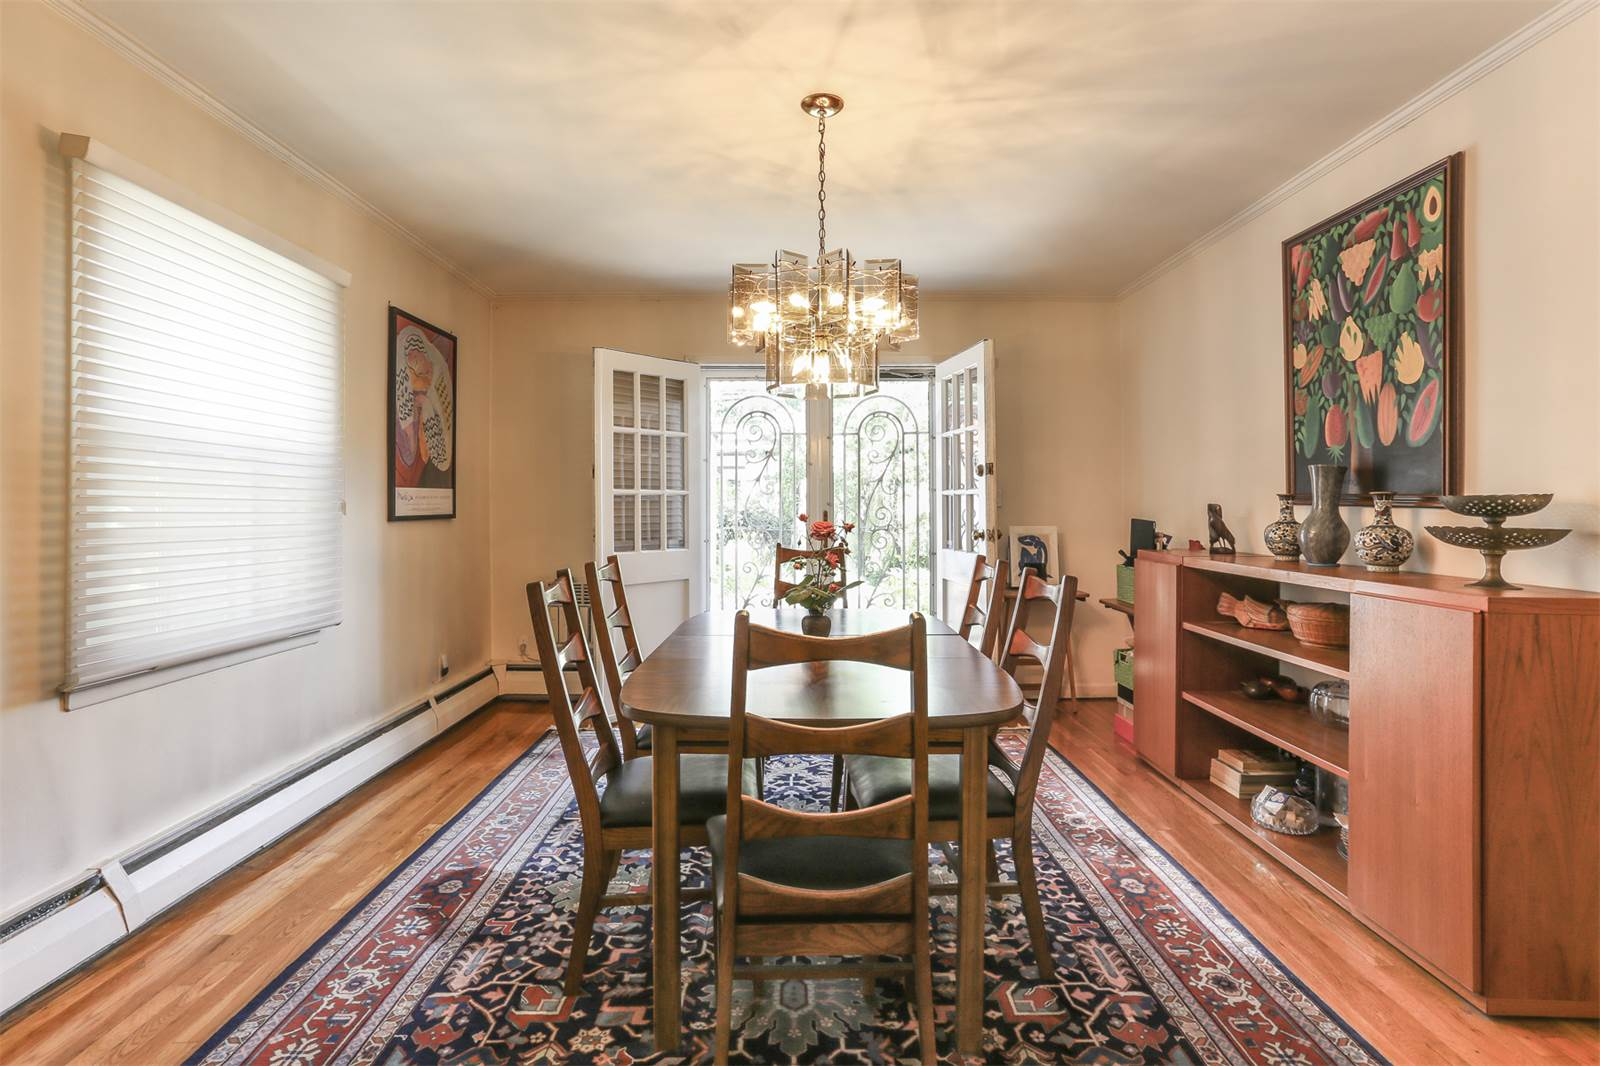 OPEN HOUSE SUNDAY SEPT 18TH 1 3 PM FOREST HILLS GARDENS QUEENS